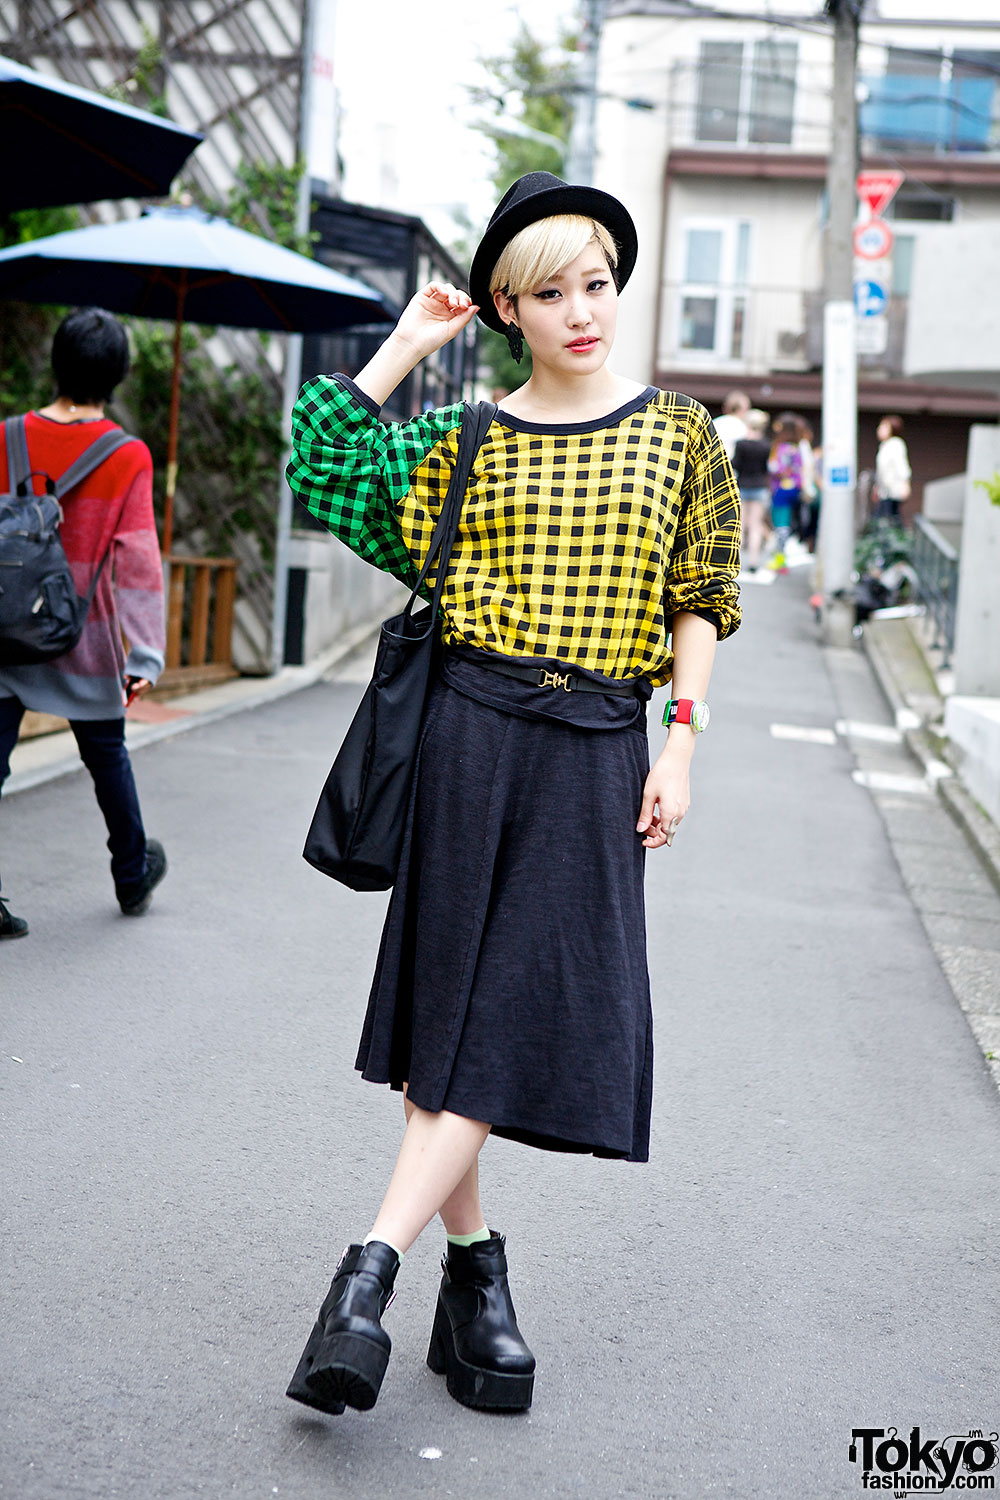 840a05eb7dce0 Japanese Fashion Blogger in Checkered Top